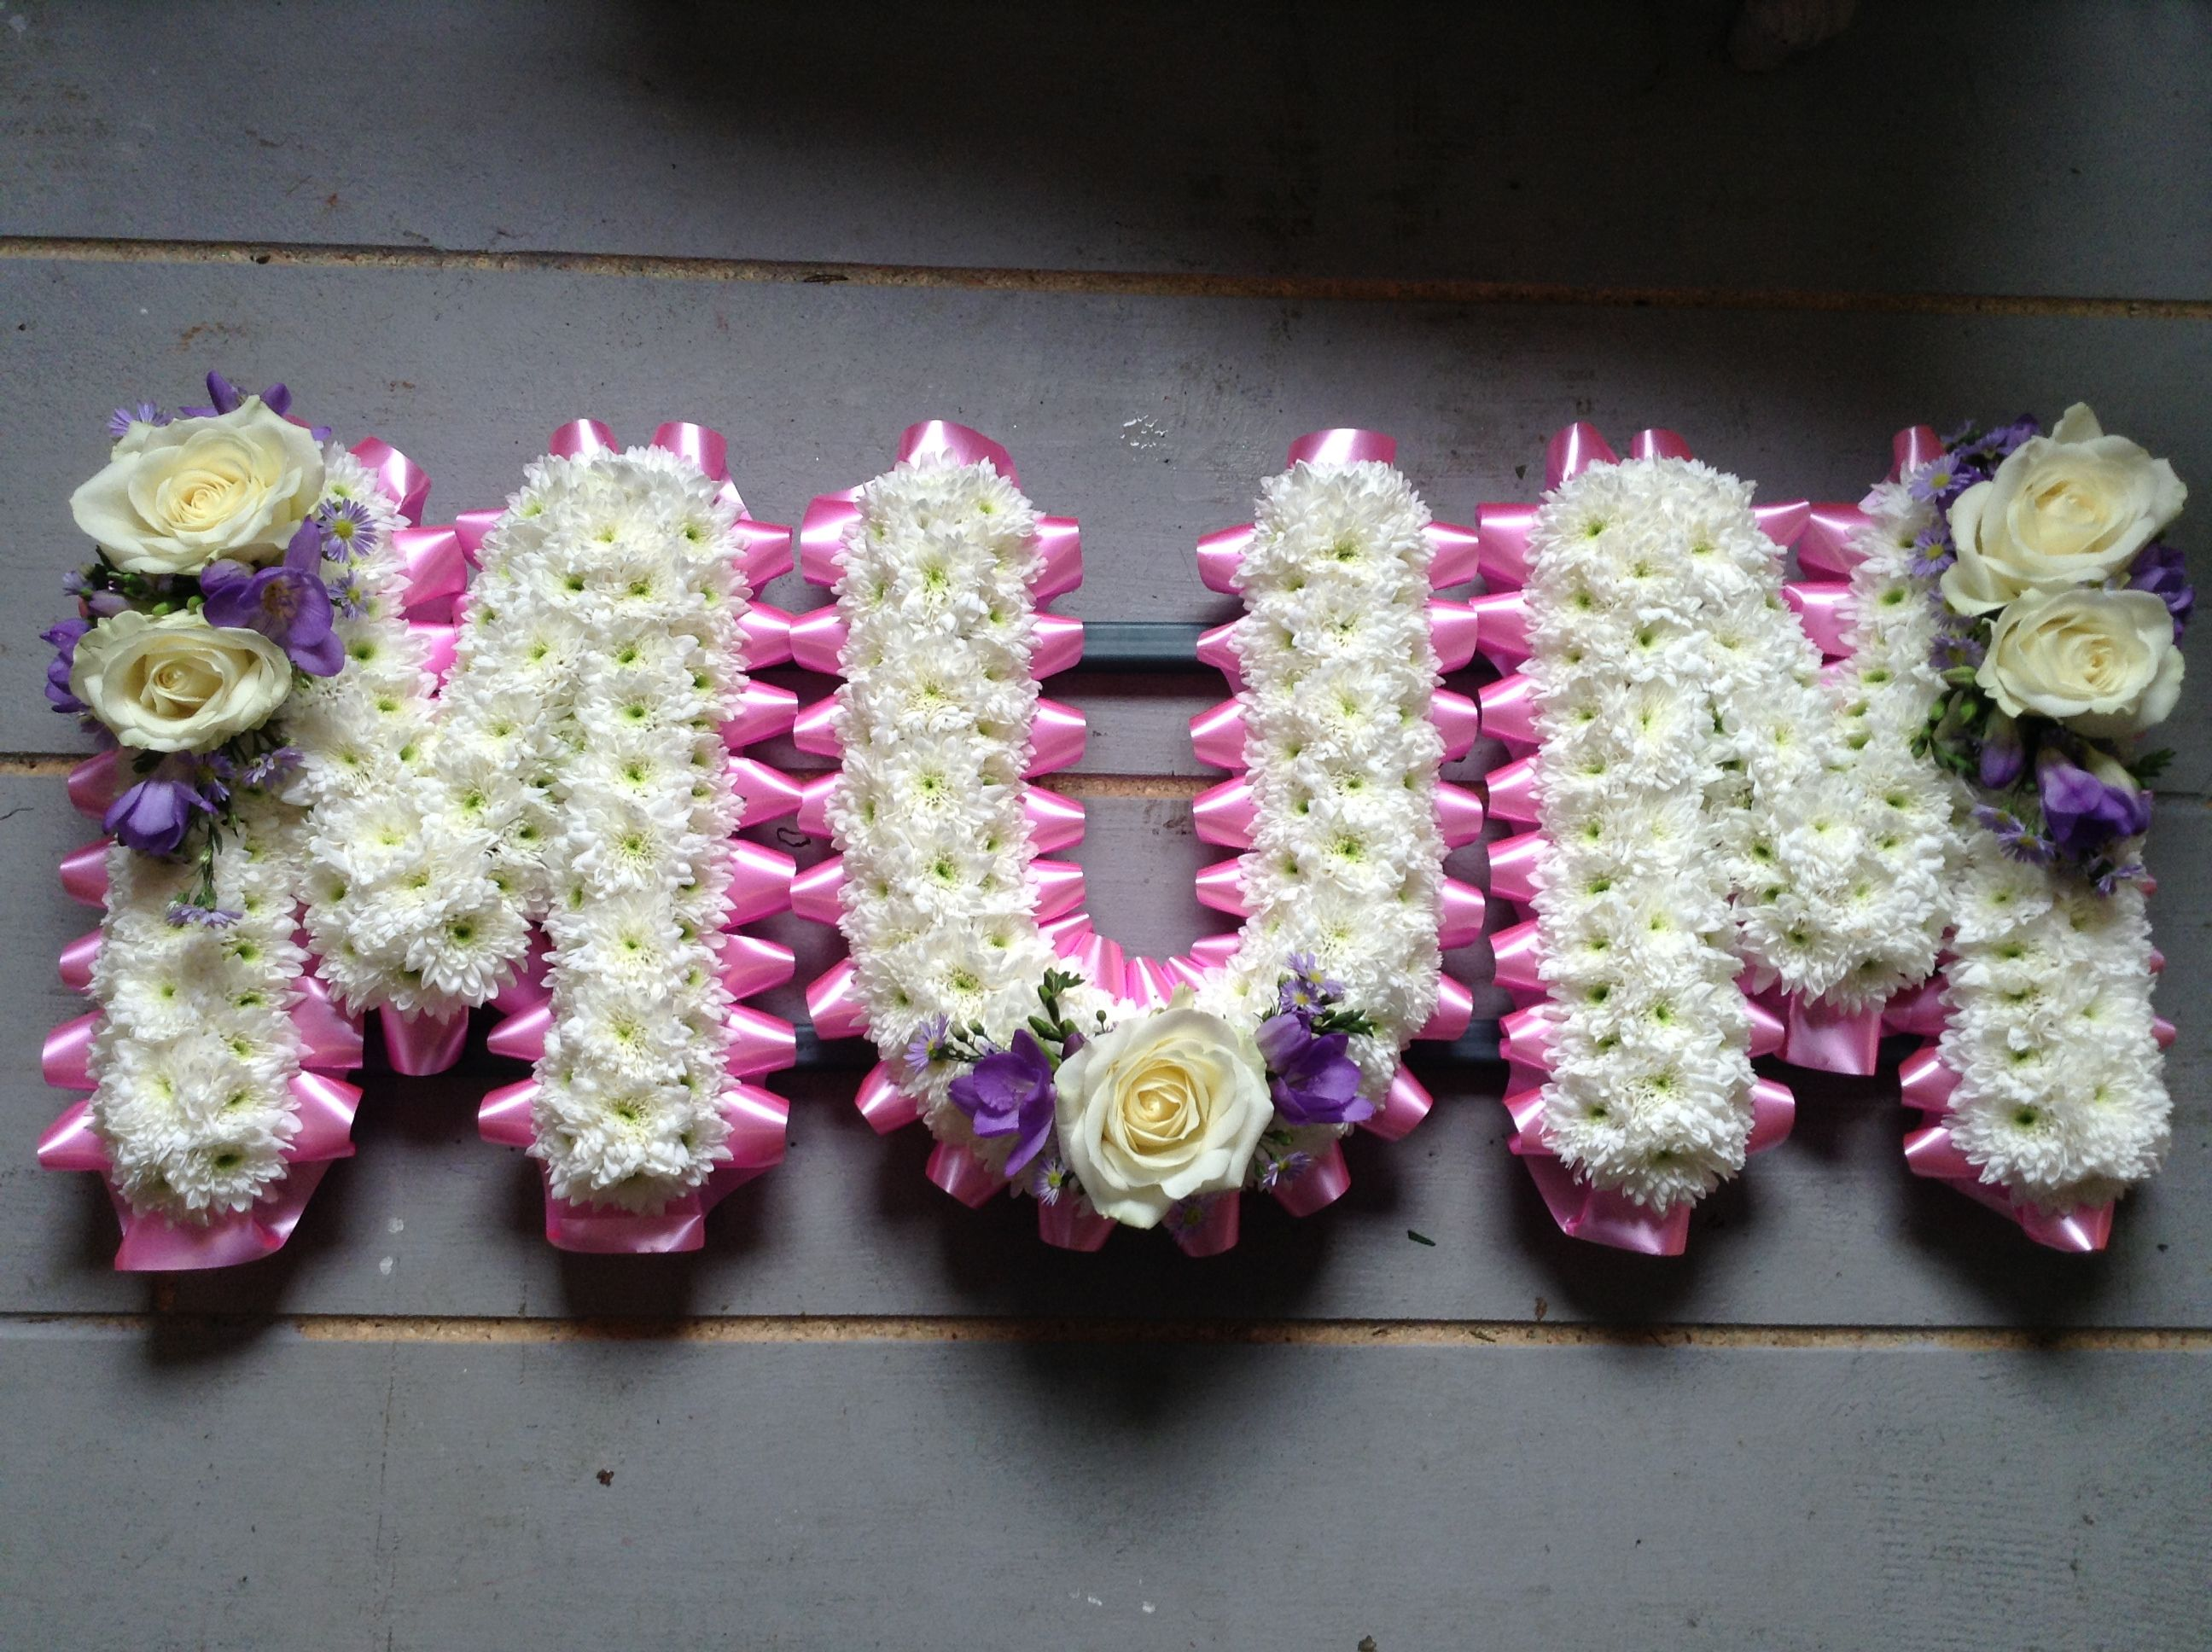 Funeral Flowers Mum Funeral Flower Letter Tribute Beautiful Pink